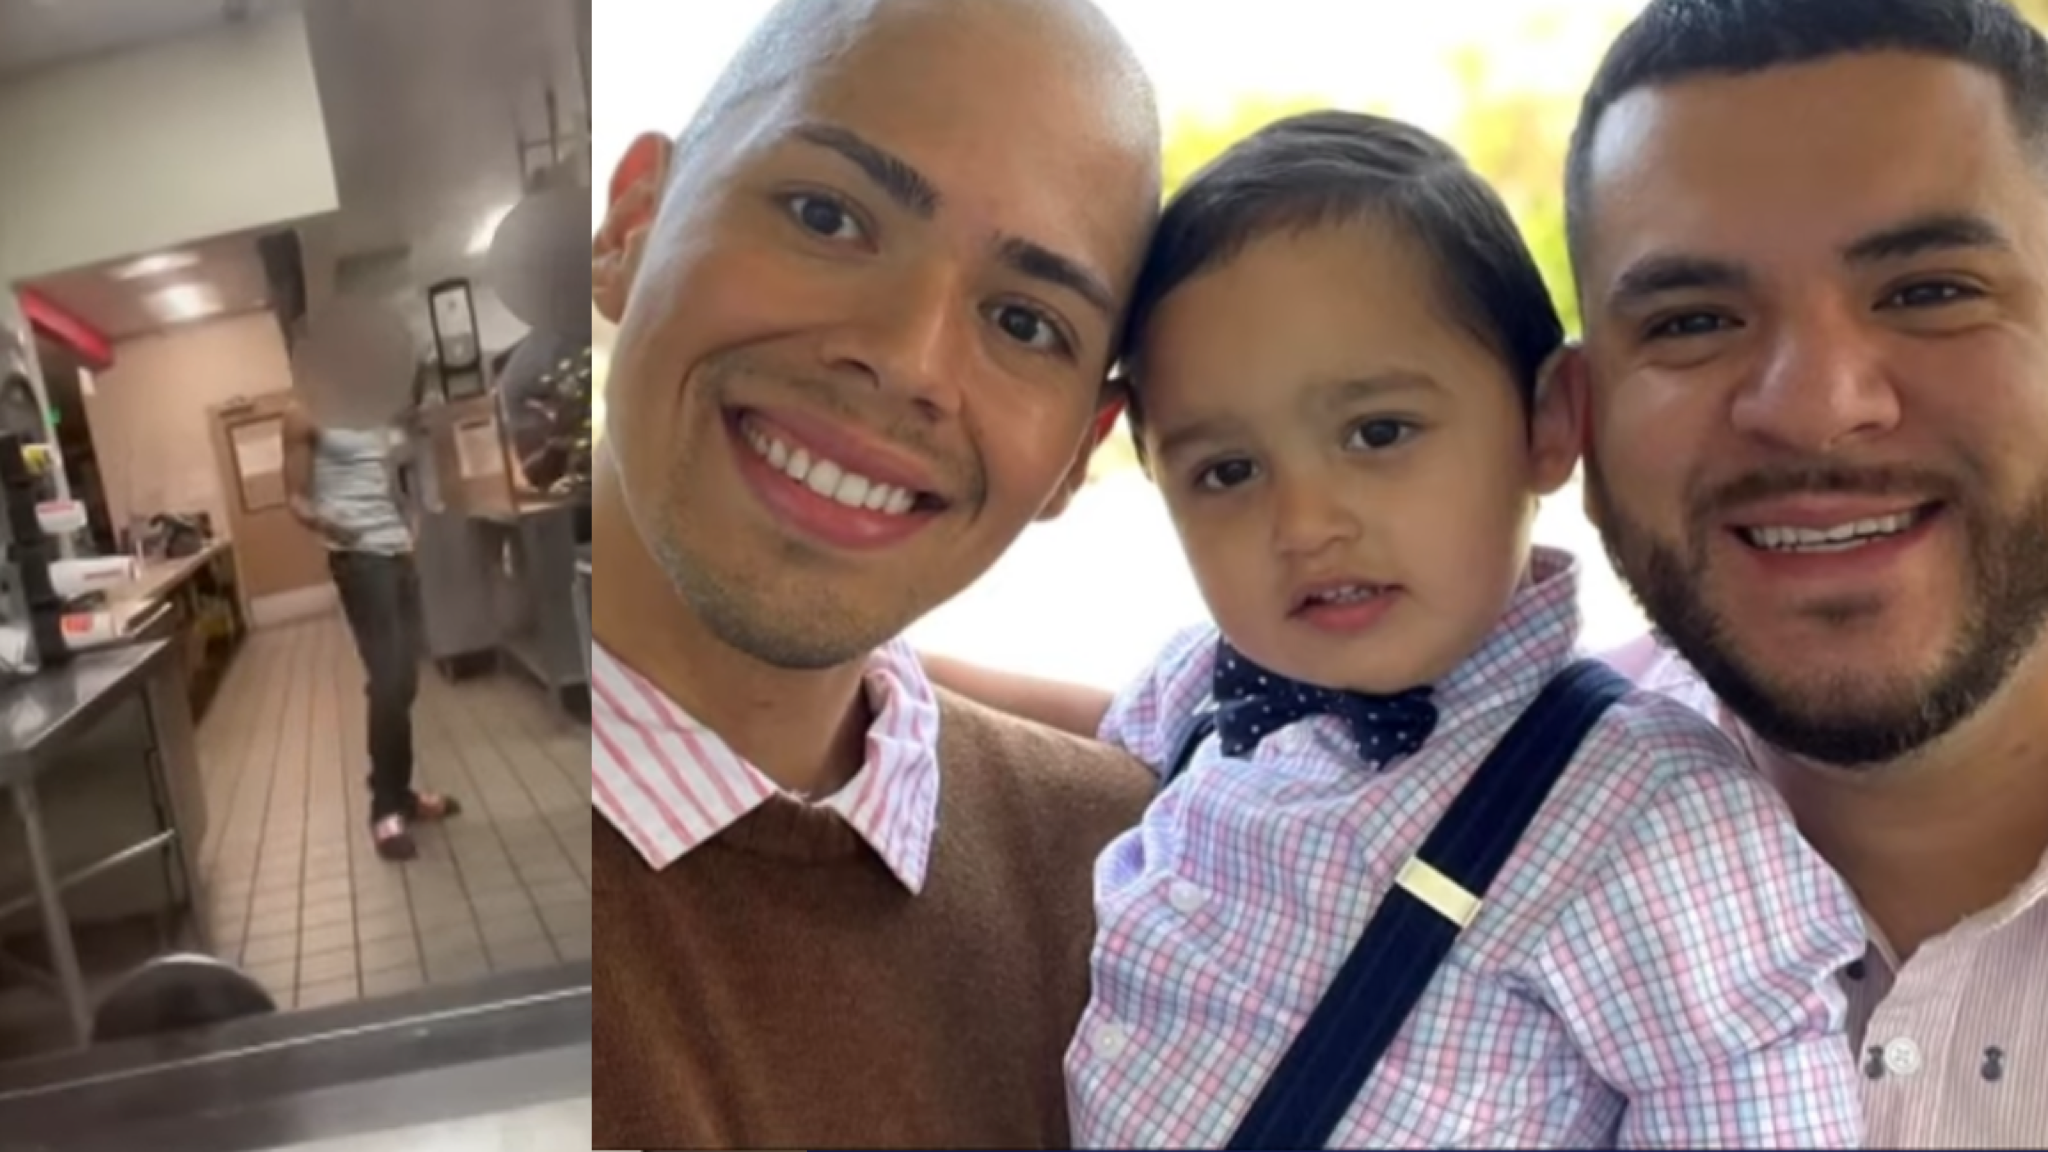 Burger King employees chased gay dads away while shouting slurs in alleged hate crime